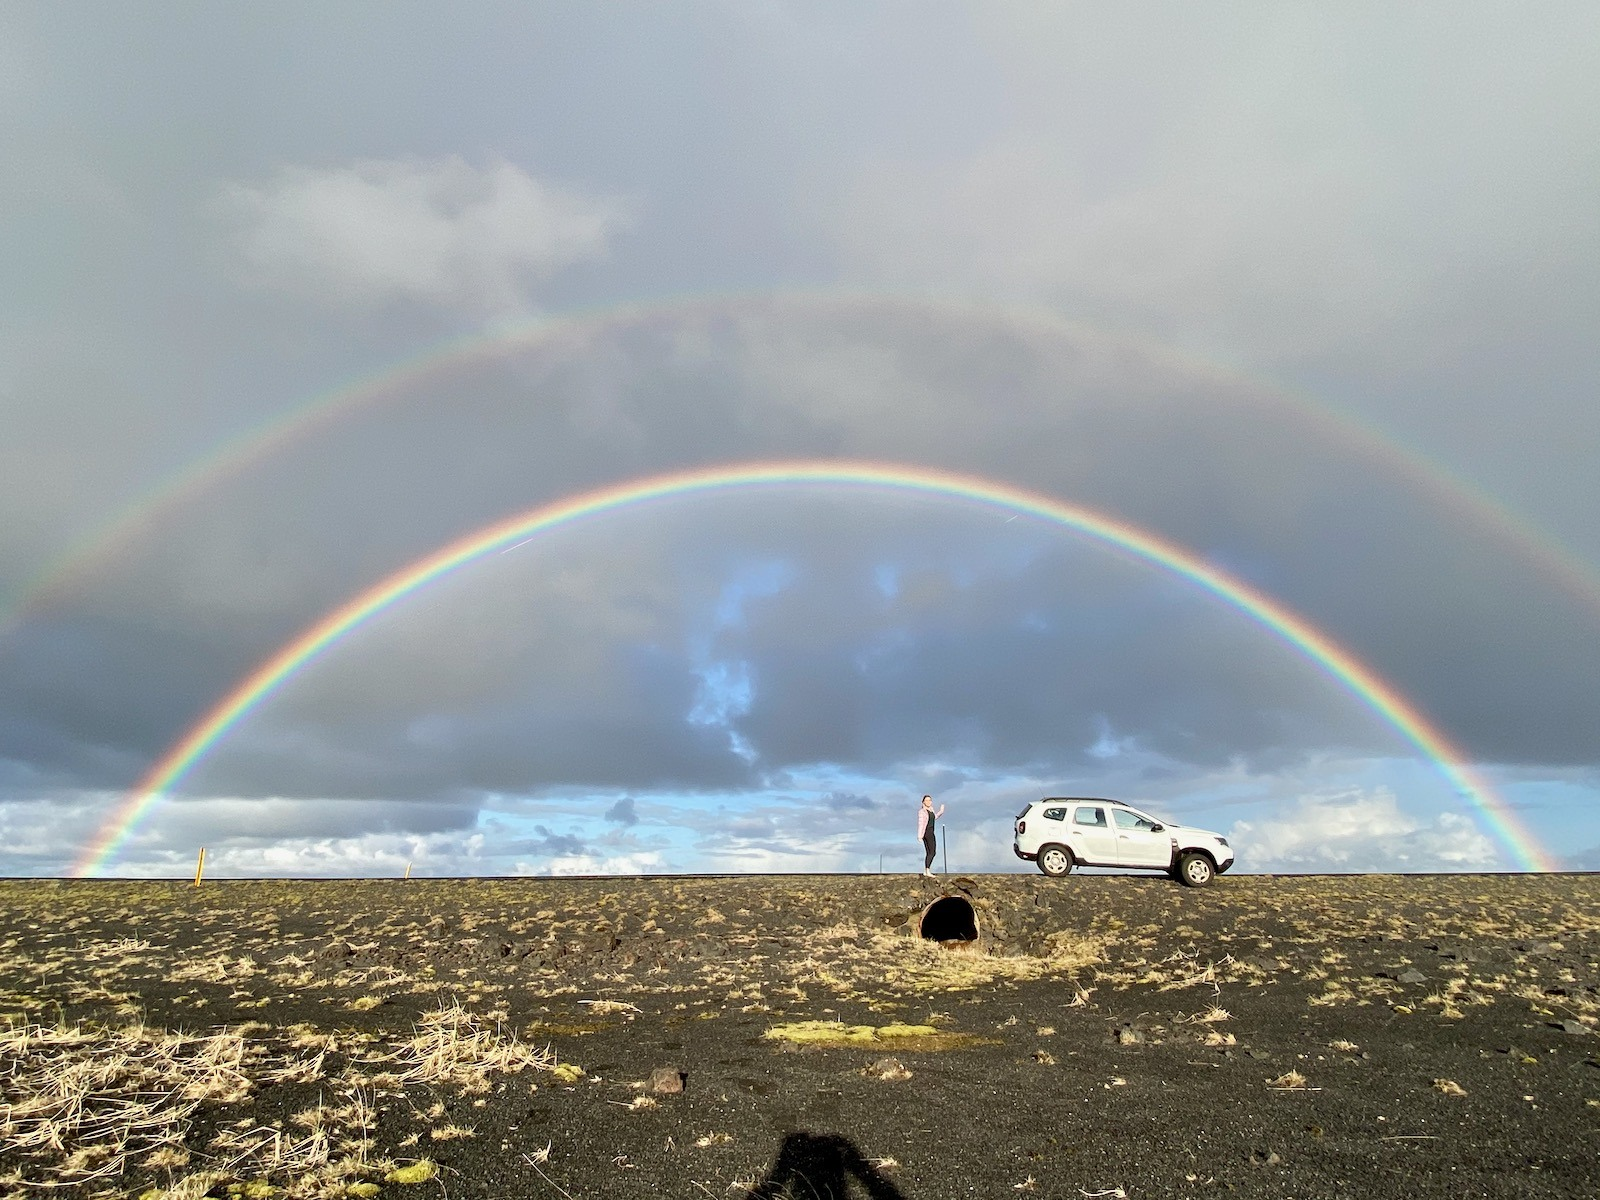 Double rainbow over an open field in Iceland.